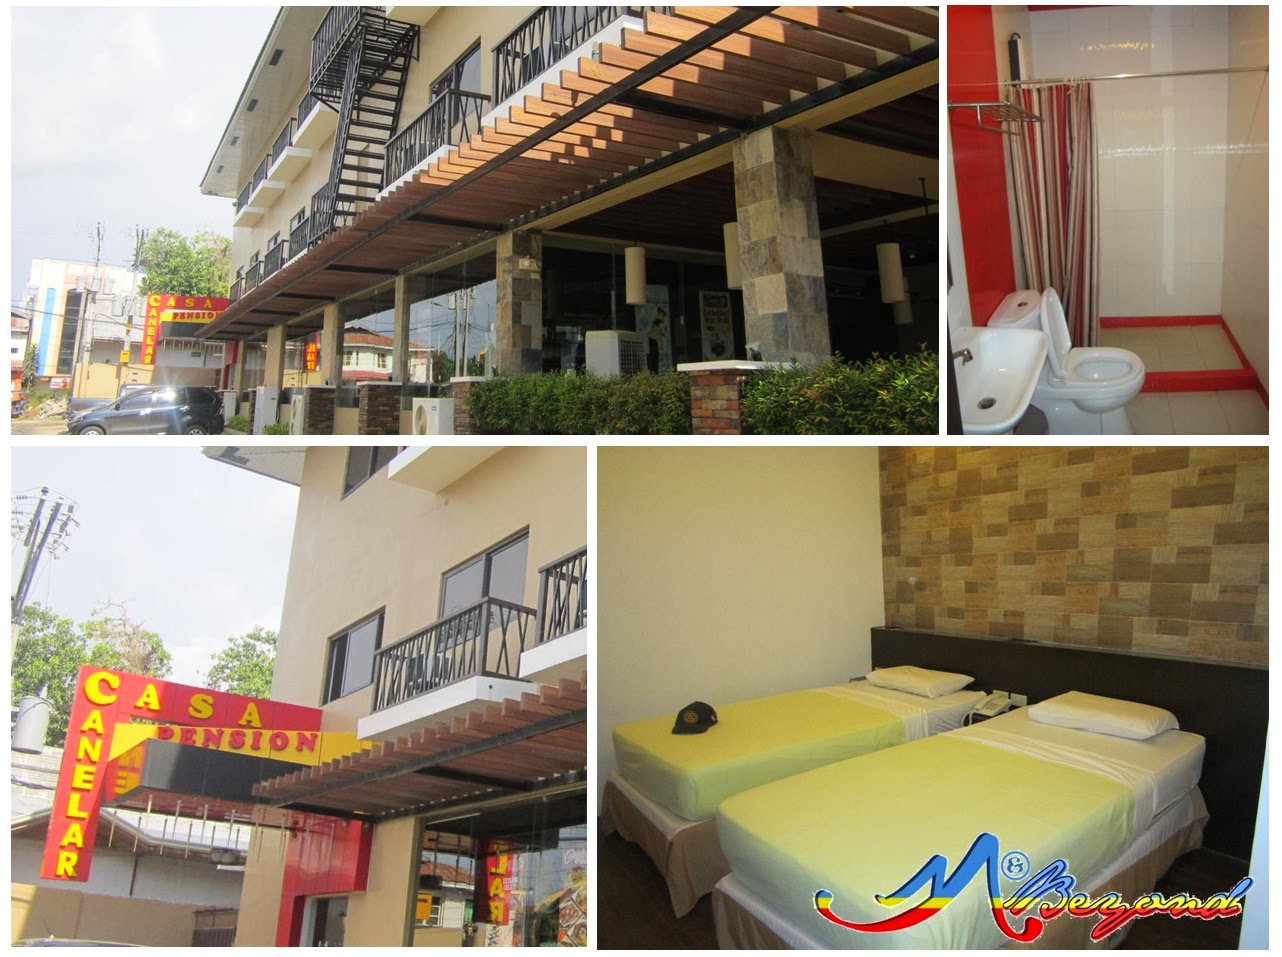 accommodations in zamboanga city, budget hotel in zamboanga city, casa canelar zamboanga city, hotel near canelar barter, cheap hotel in zamboanga city, where to stay in zamboanga city